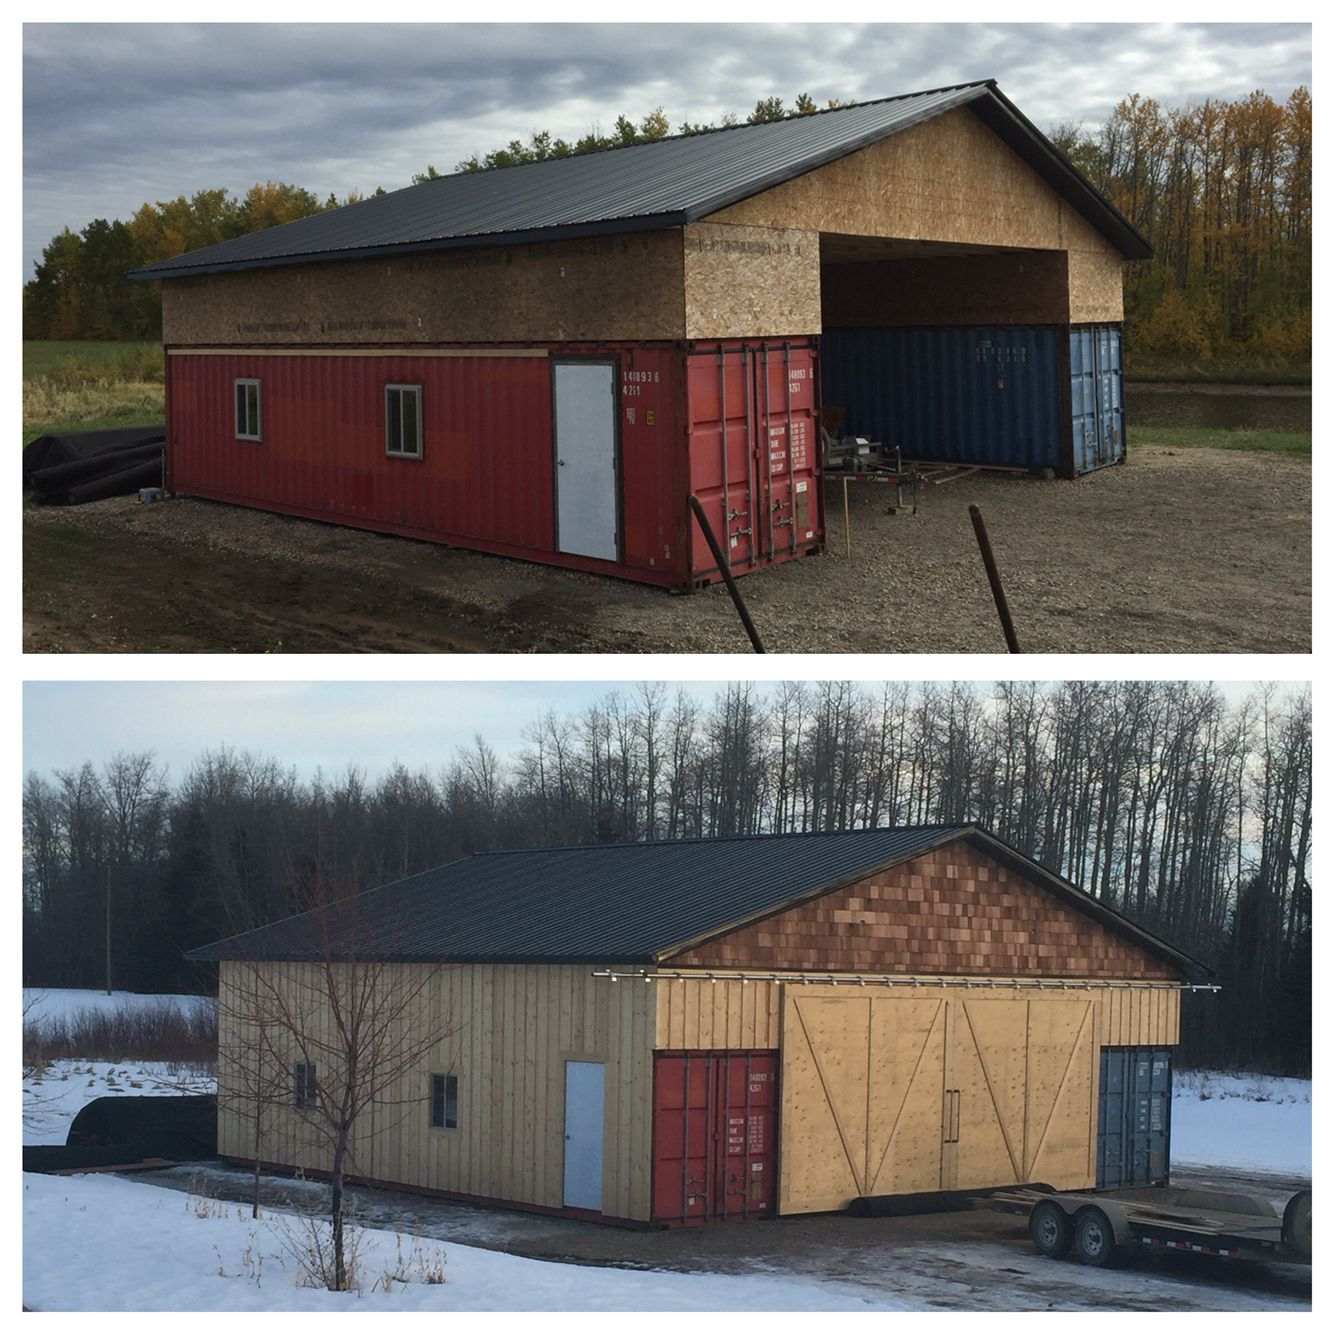 40 Feet Container Homes: Our Shipping Container/Seacan Barn Alberta, Canada